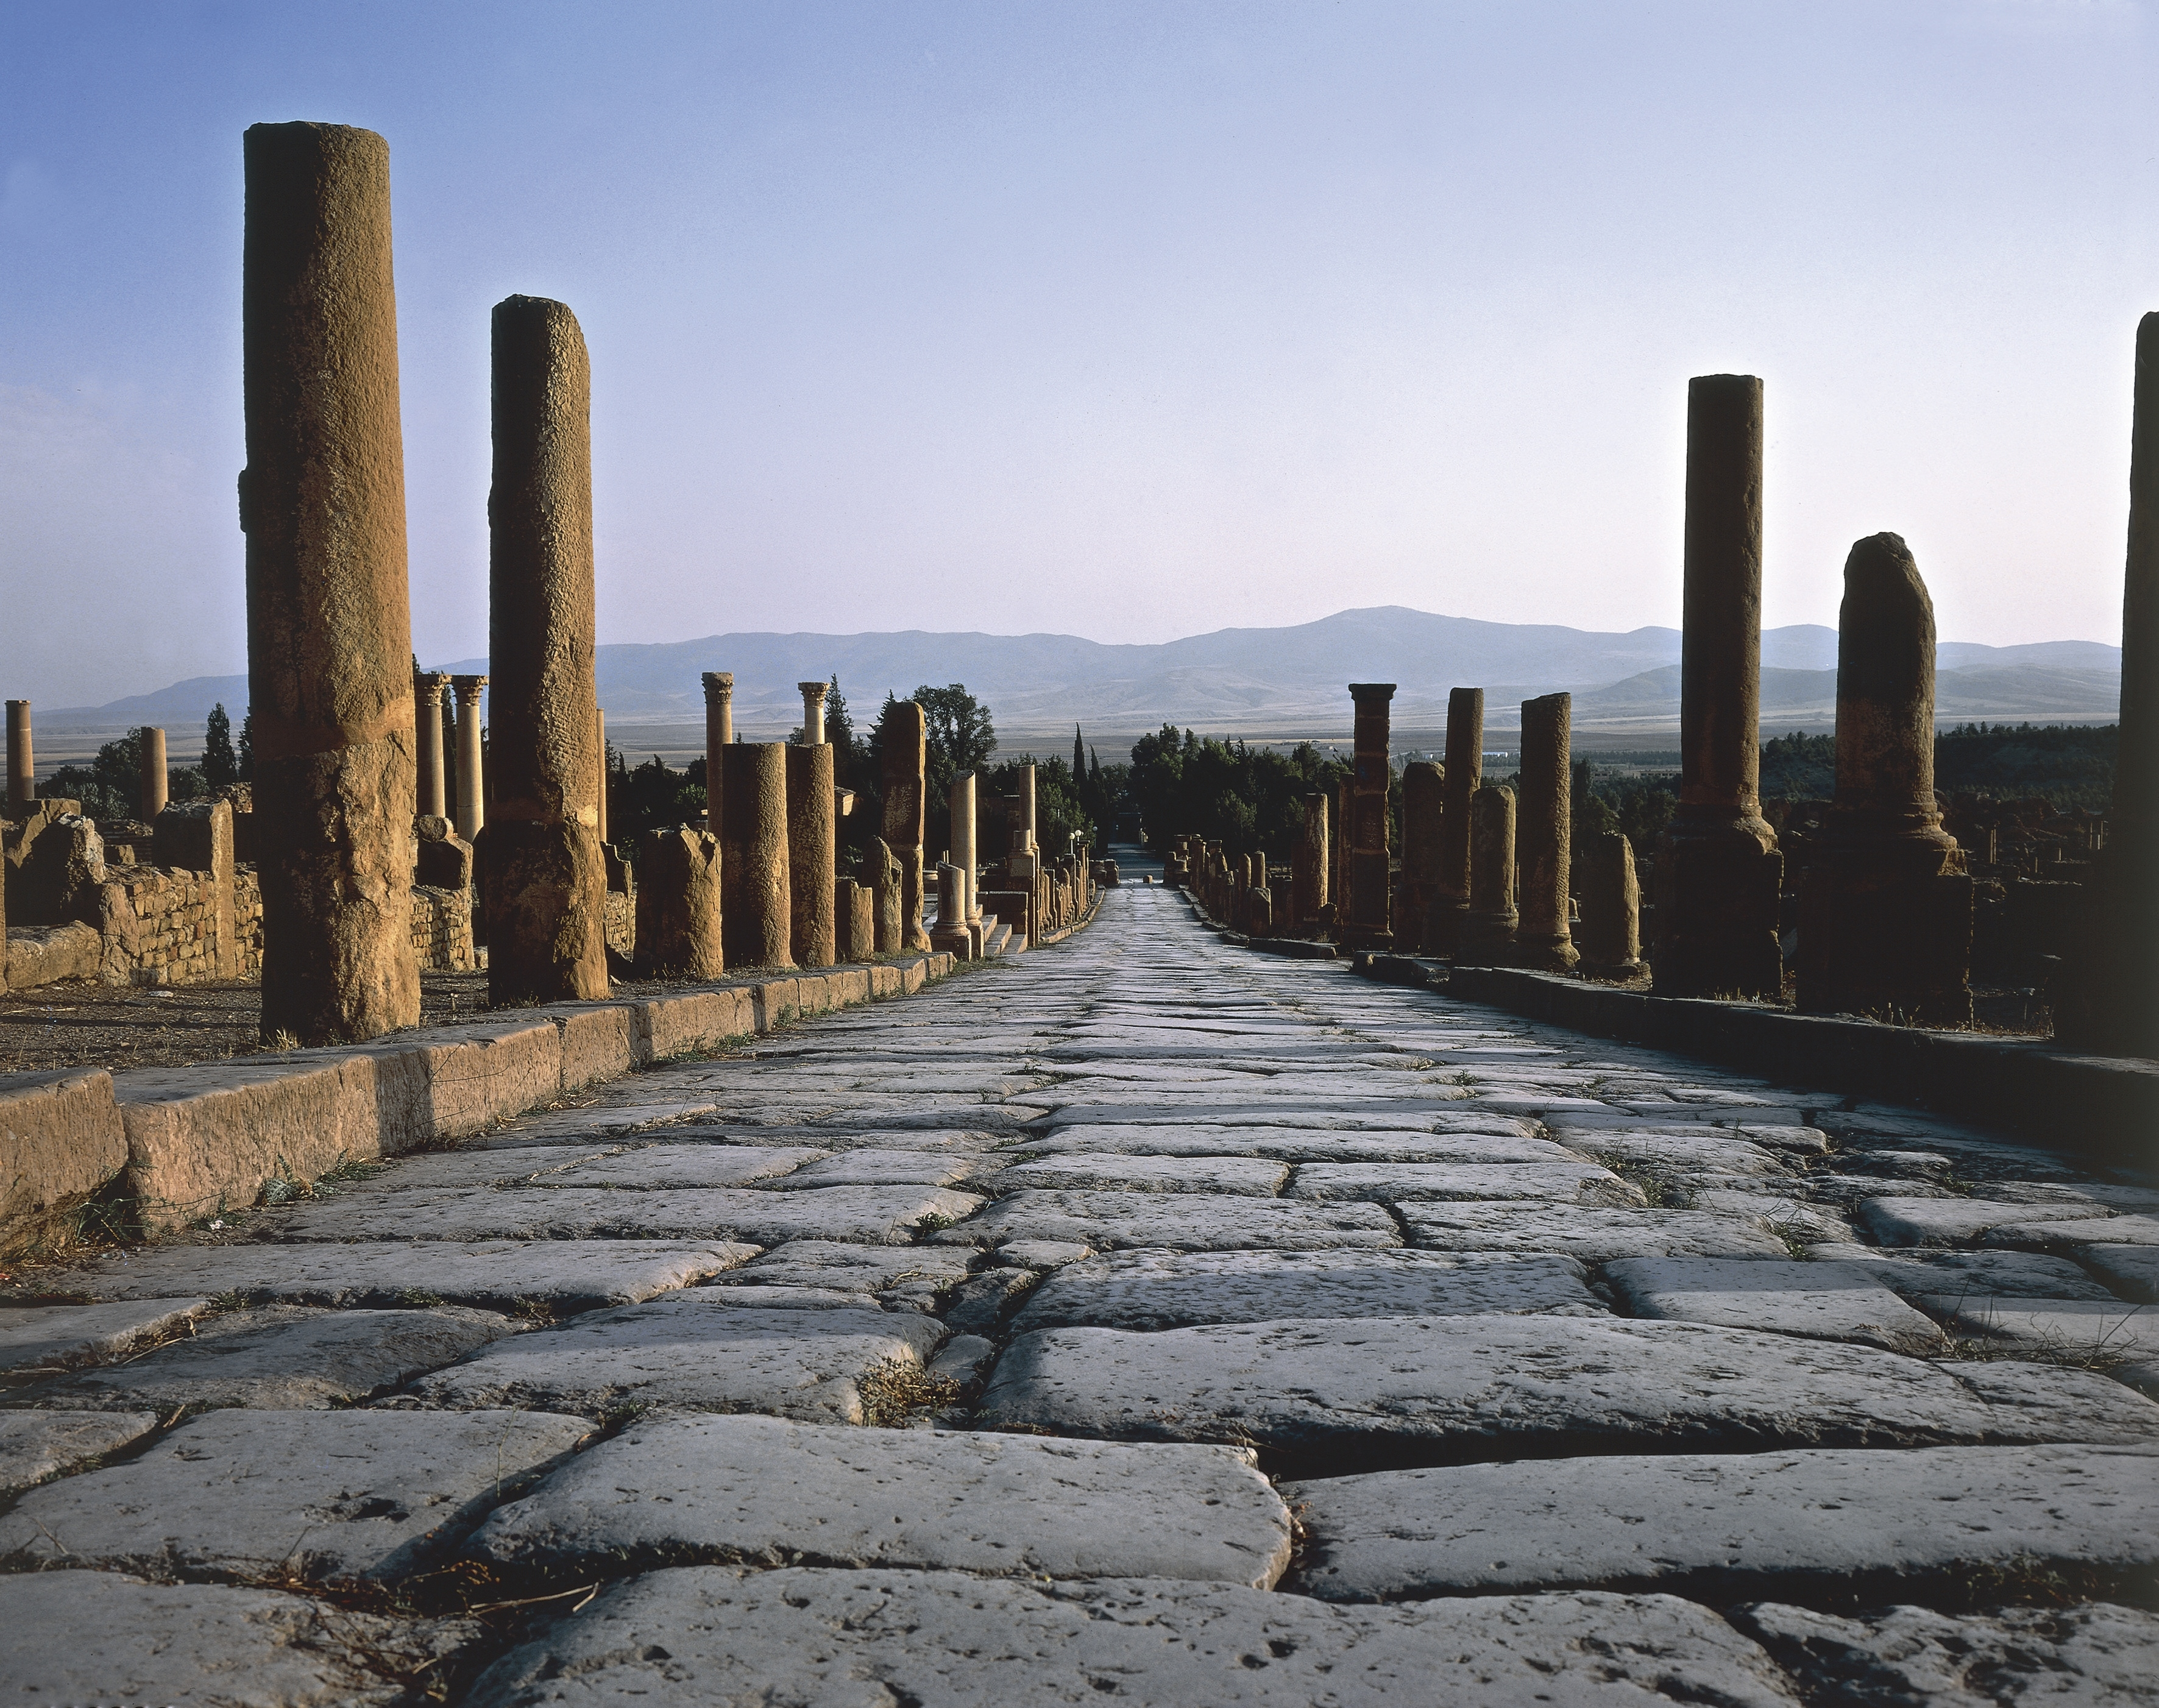 roman roads Find and save ideas about roman roads on pinterest | see more ideas about roman sayings, romans road verses and ancient rome.